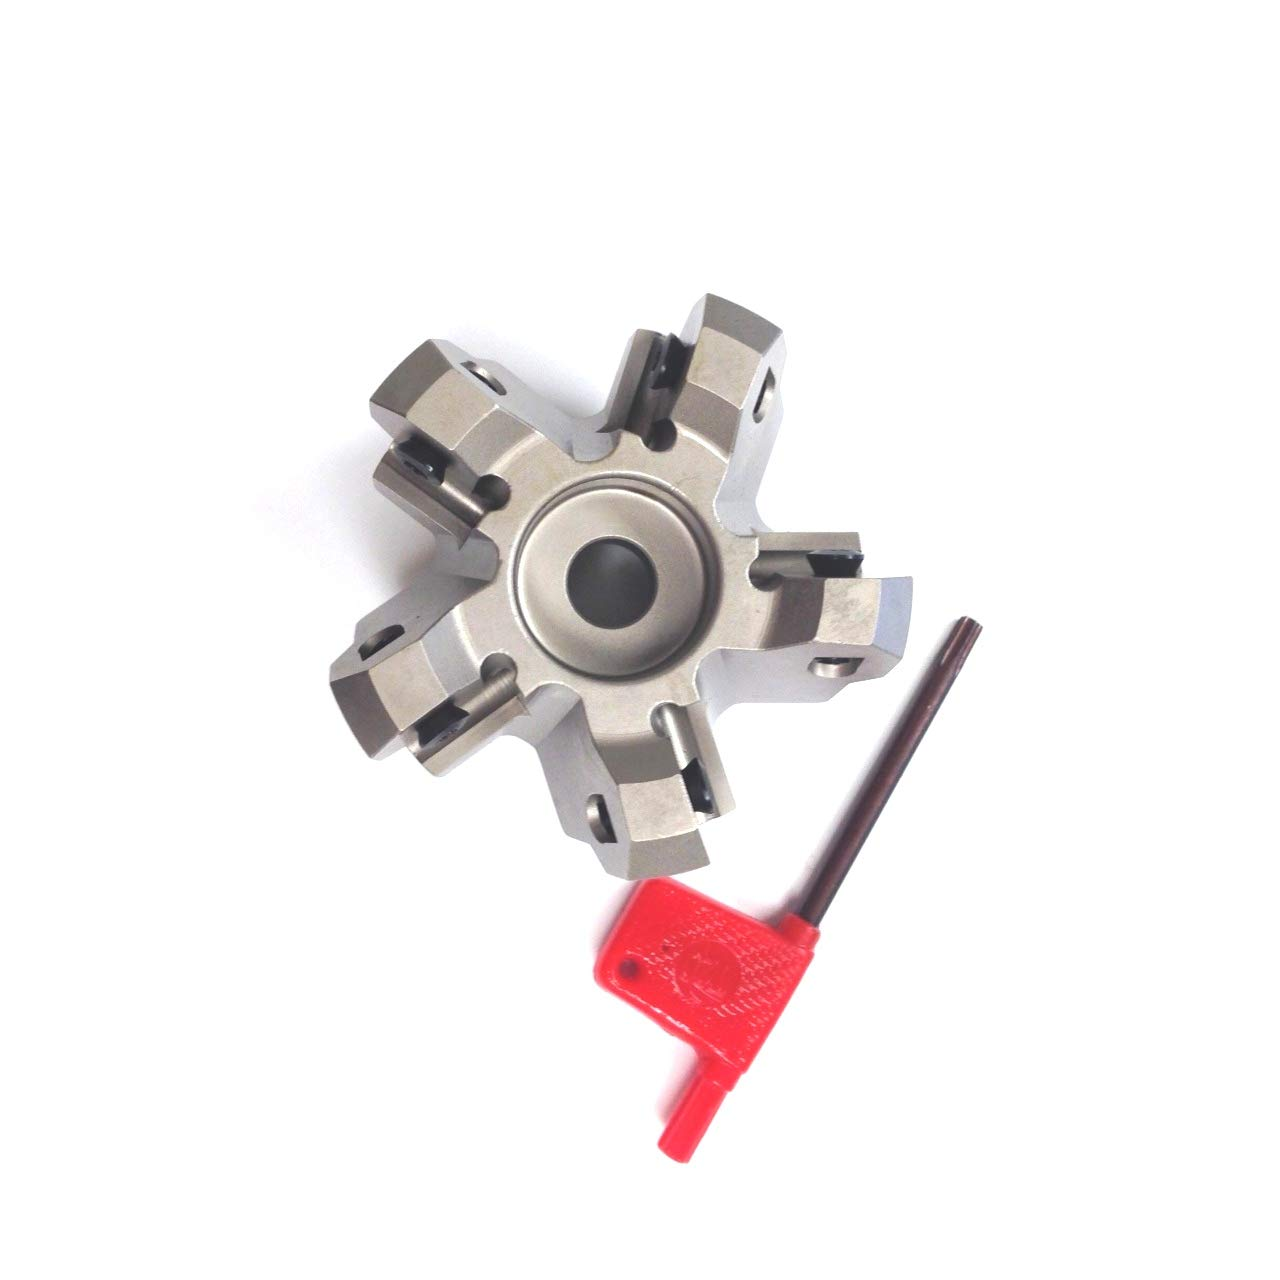 HHIP 2068-2500 2-1//2 x 3//4 Bore 45 Degree Octagon 5 Insert Index able Face Mill 1-3//4 OAL